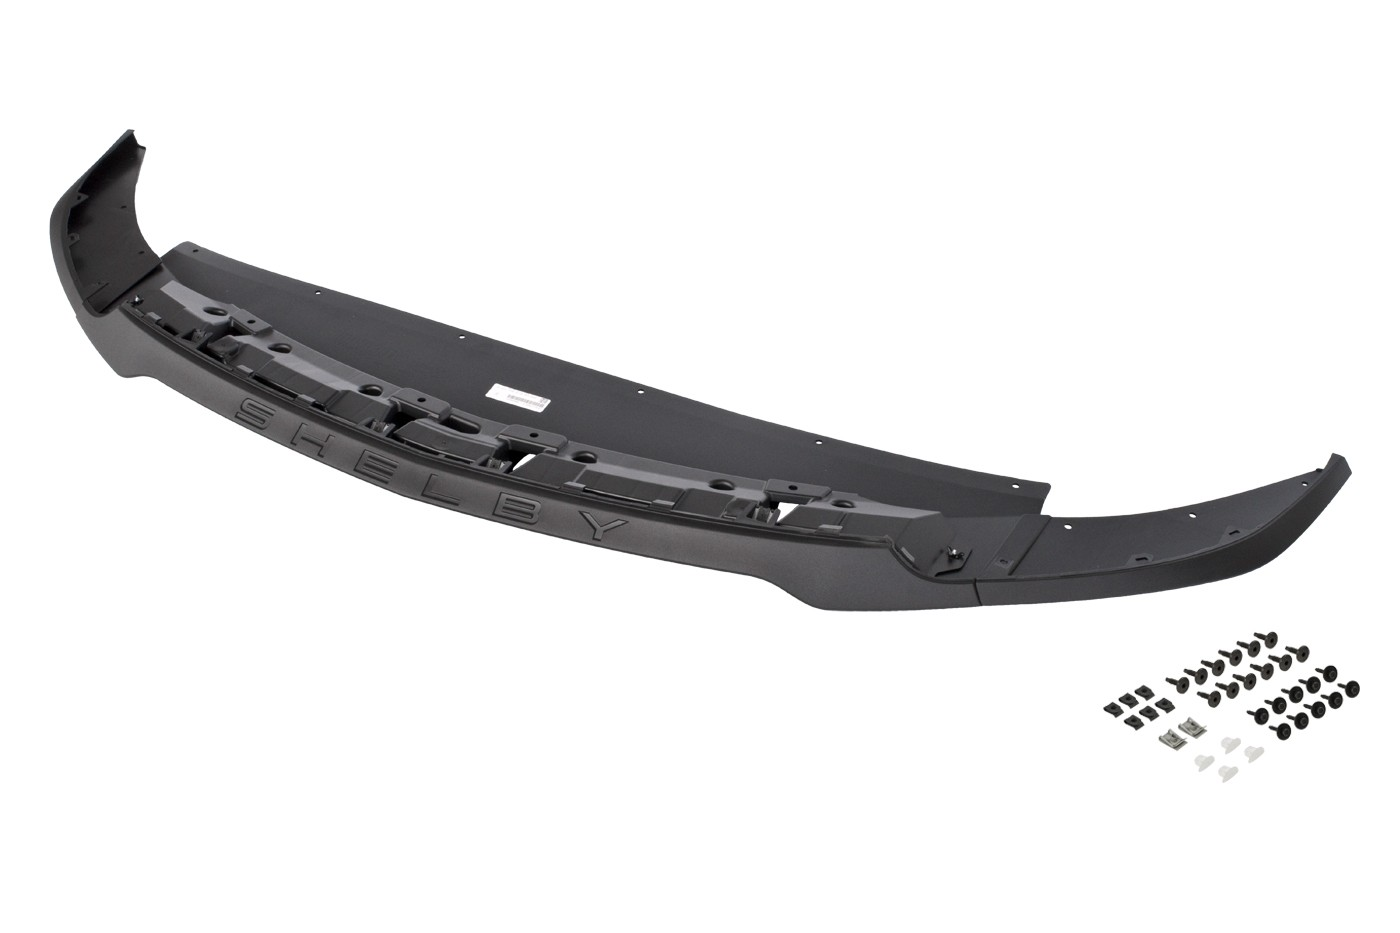 2016 2017 Mustang Shelby Gt350 Genuine Ford Front Bumper